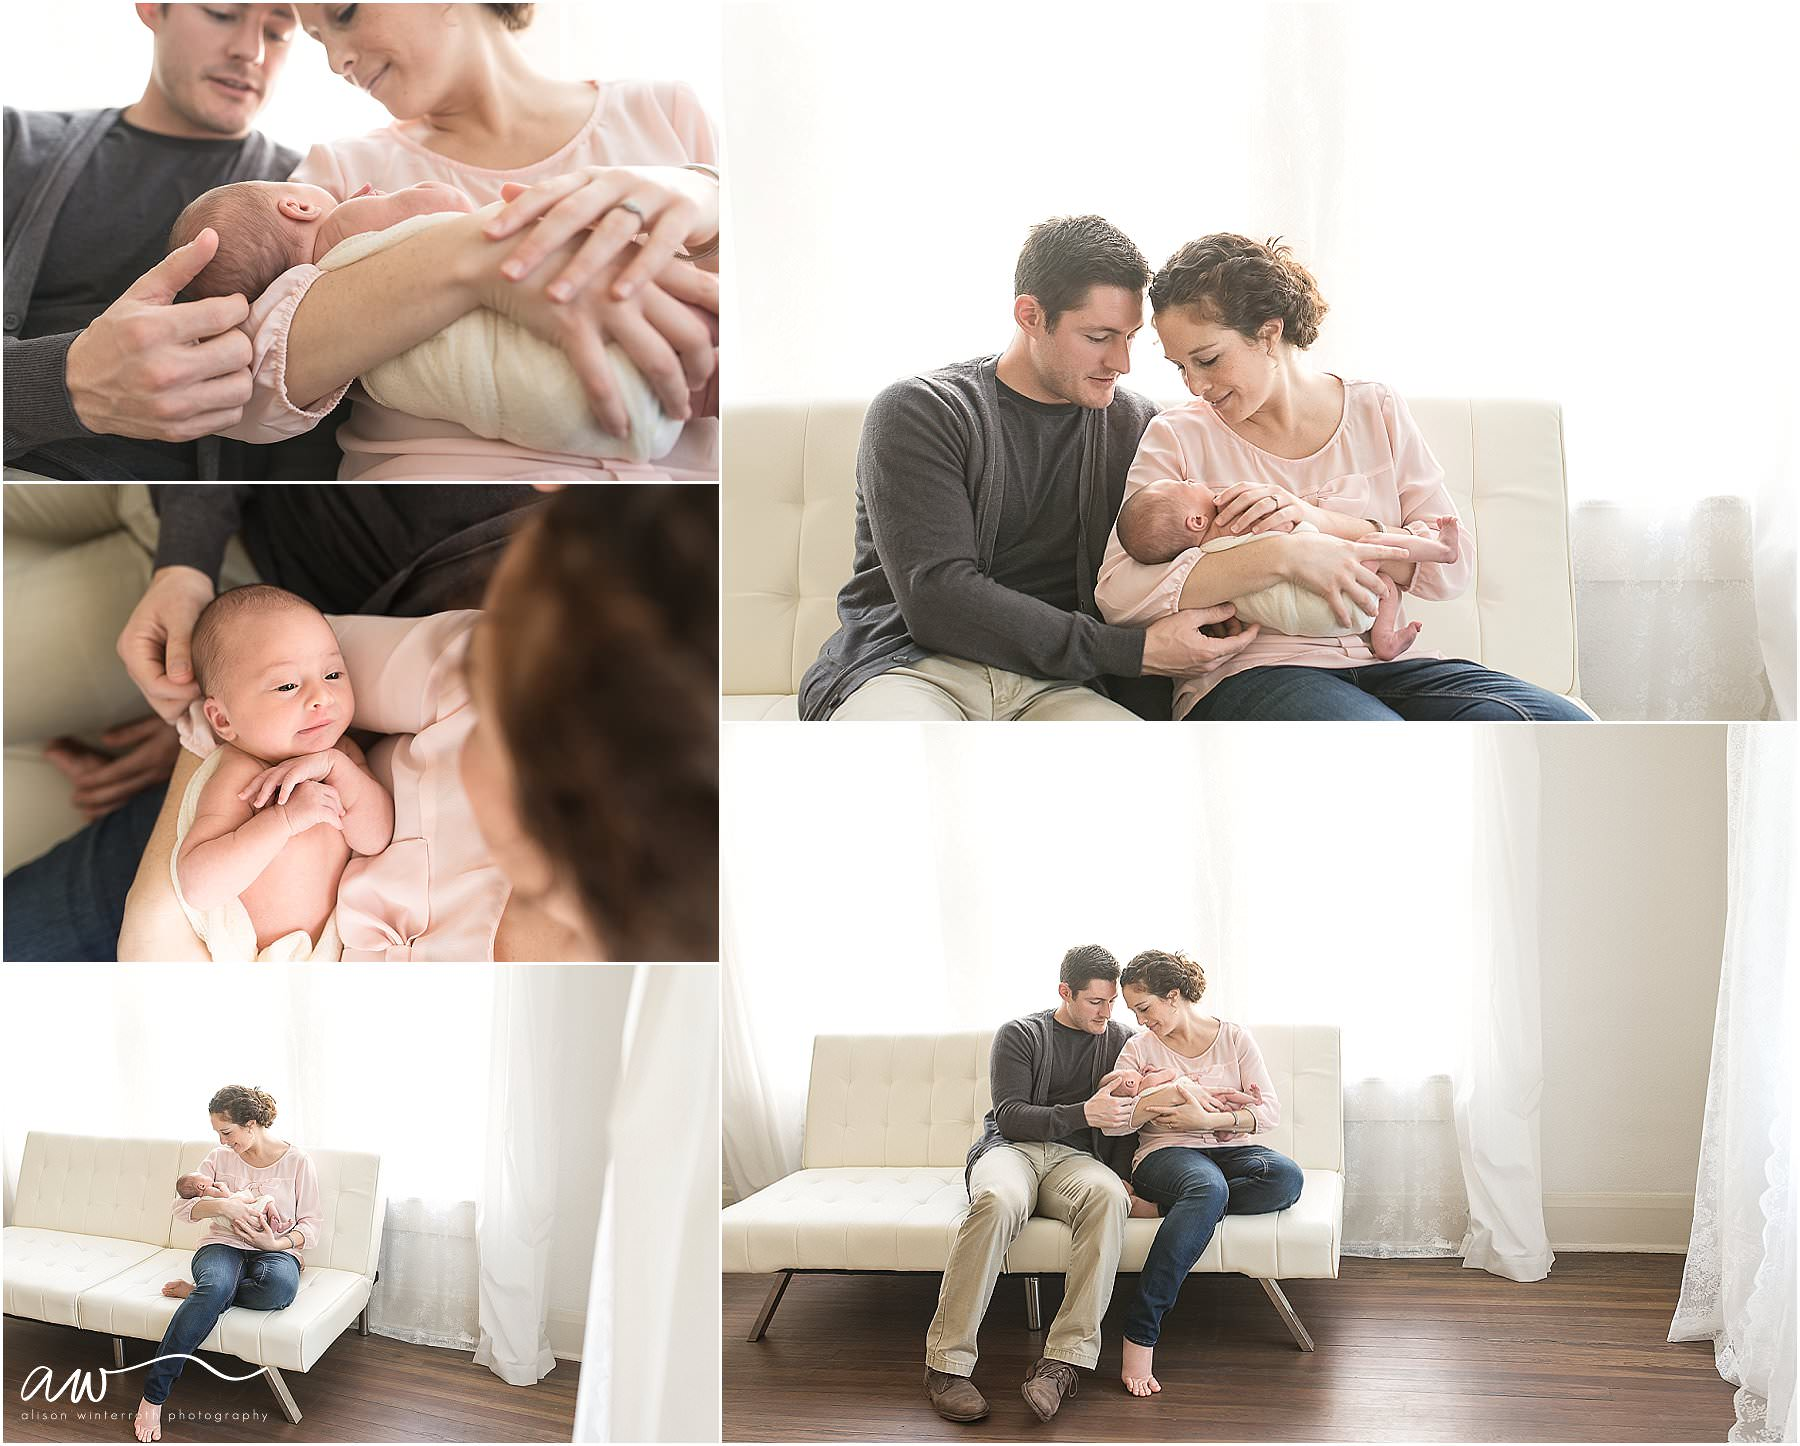 A mother and father hold their new baby girl on a white couch.